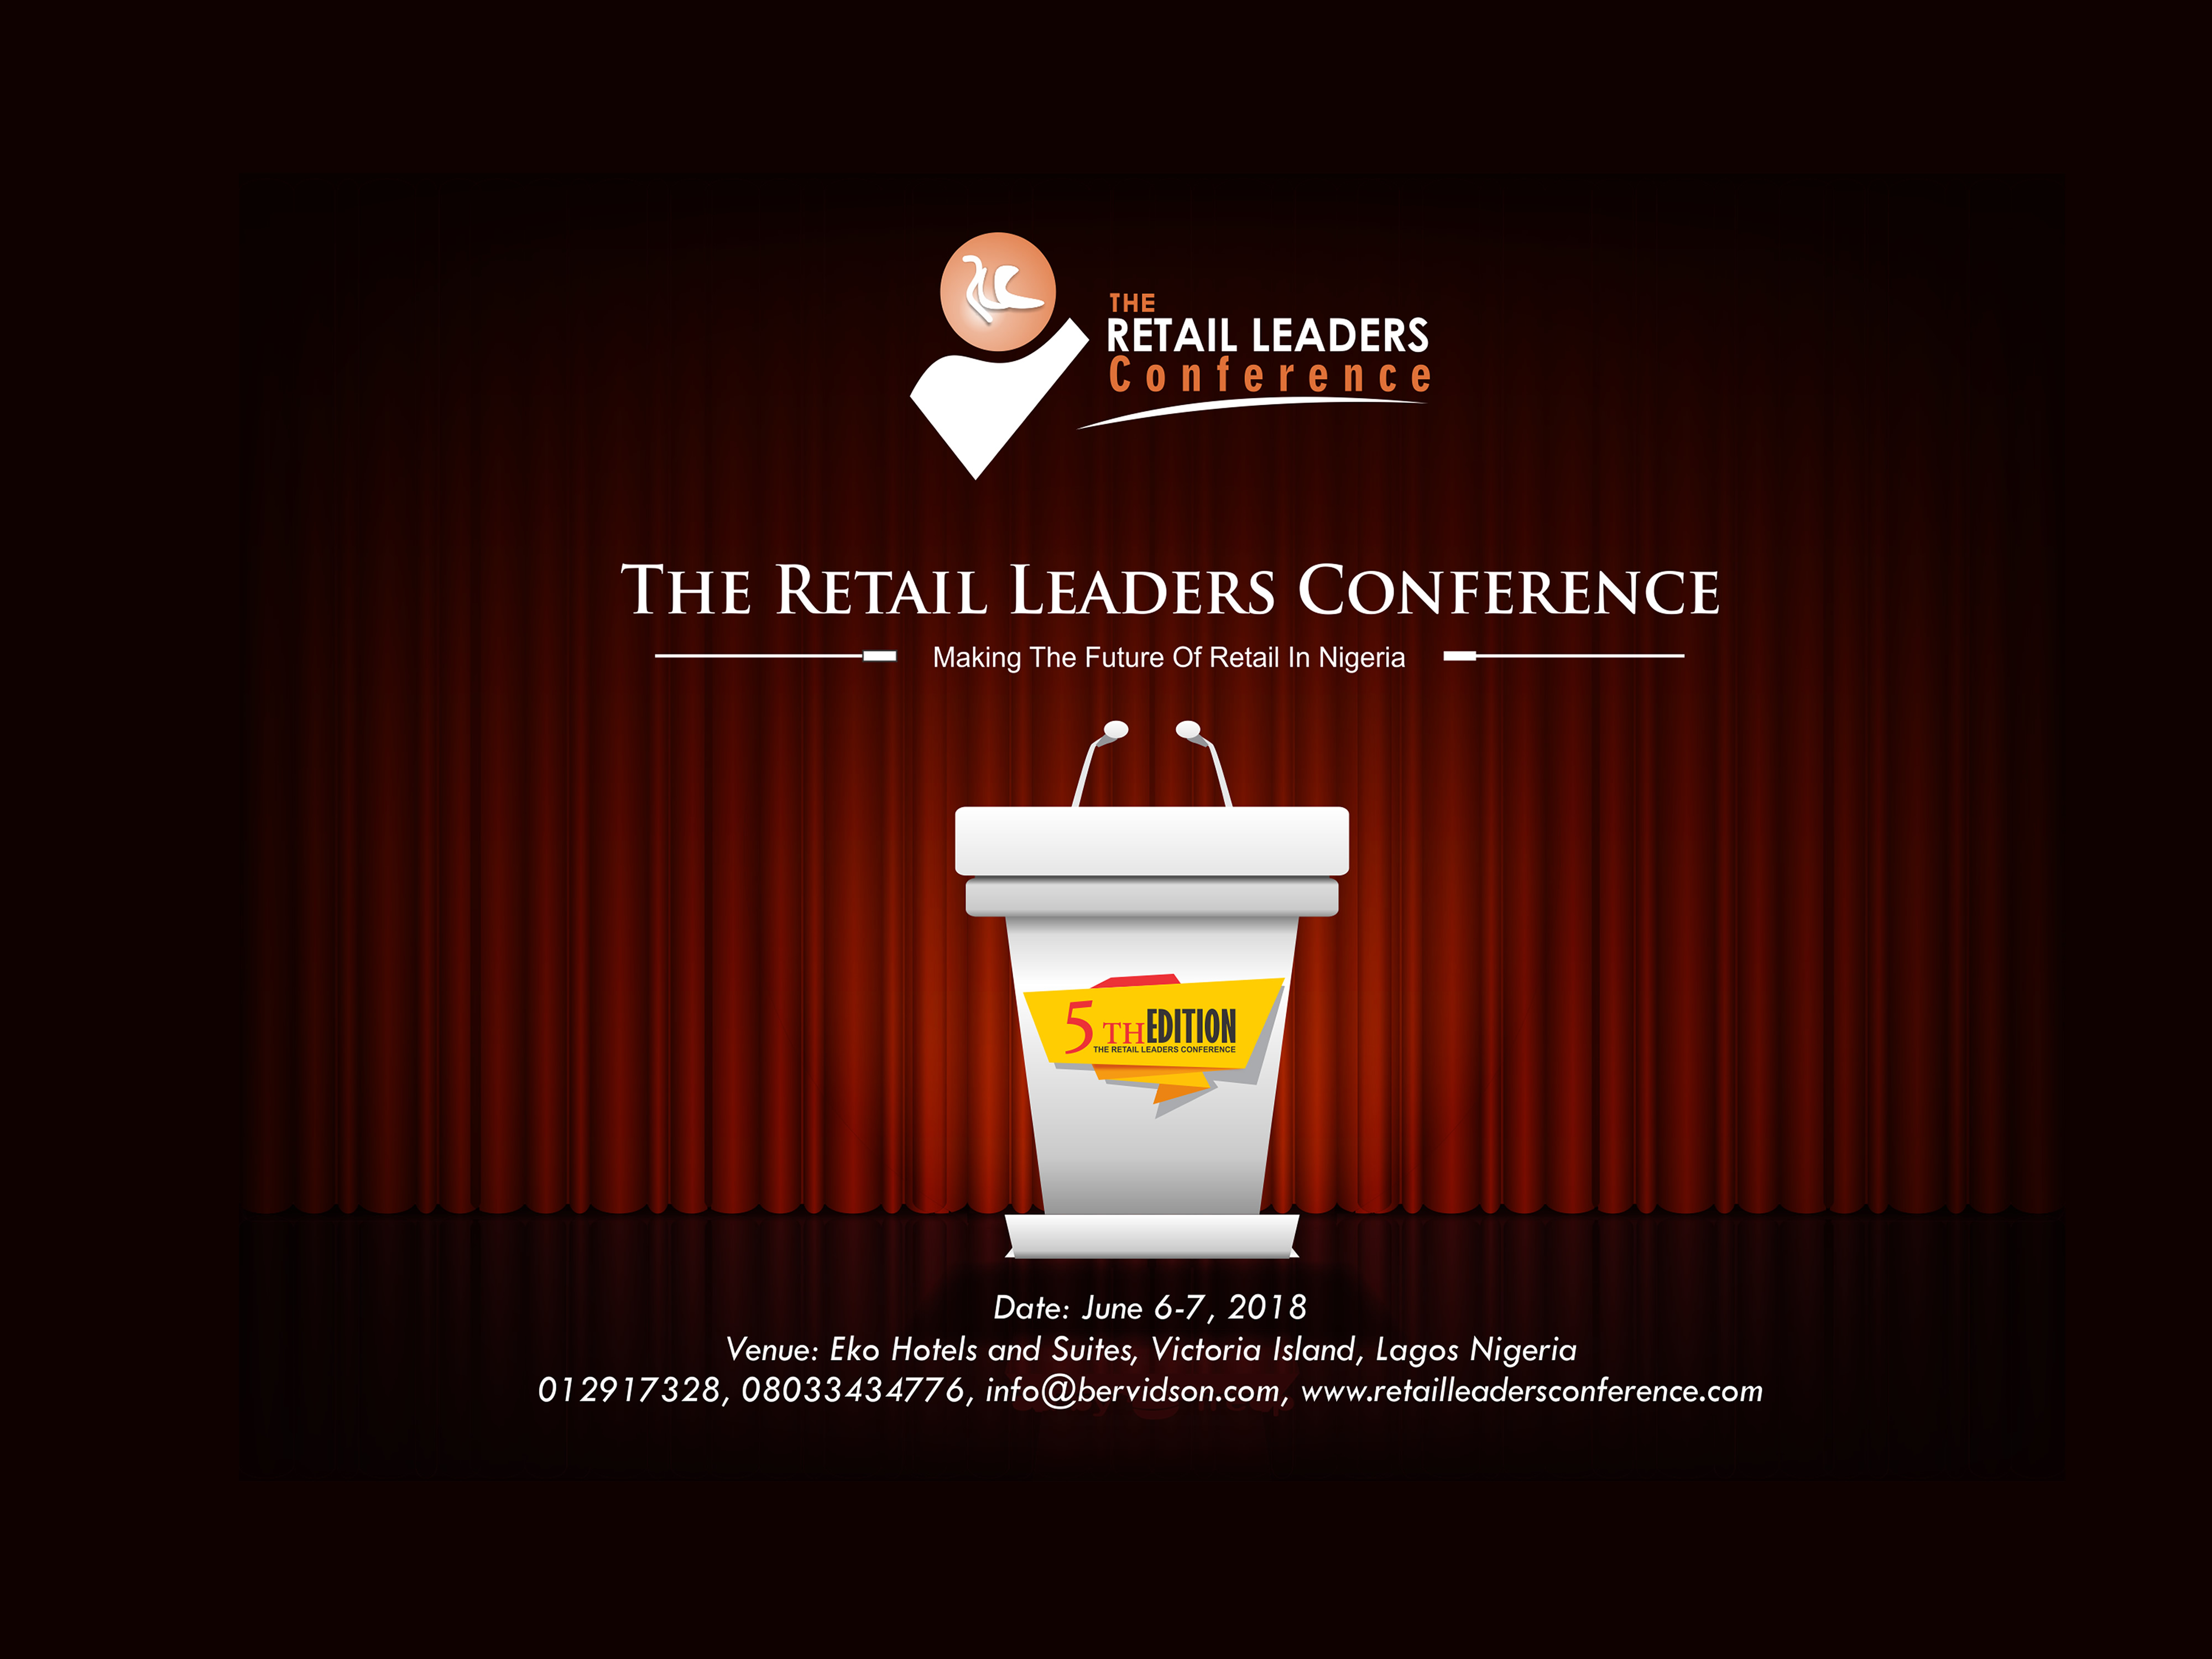 THE RETAIL LEADERS CONFERENCE – TRLC 2018 (5TH EDITION)